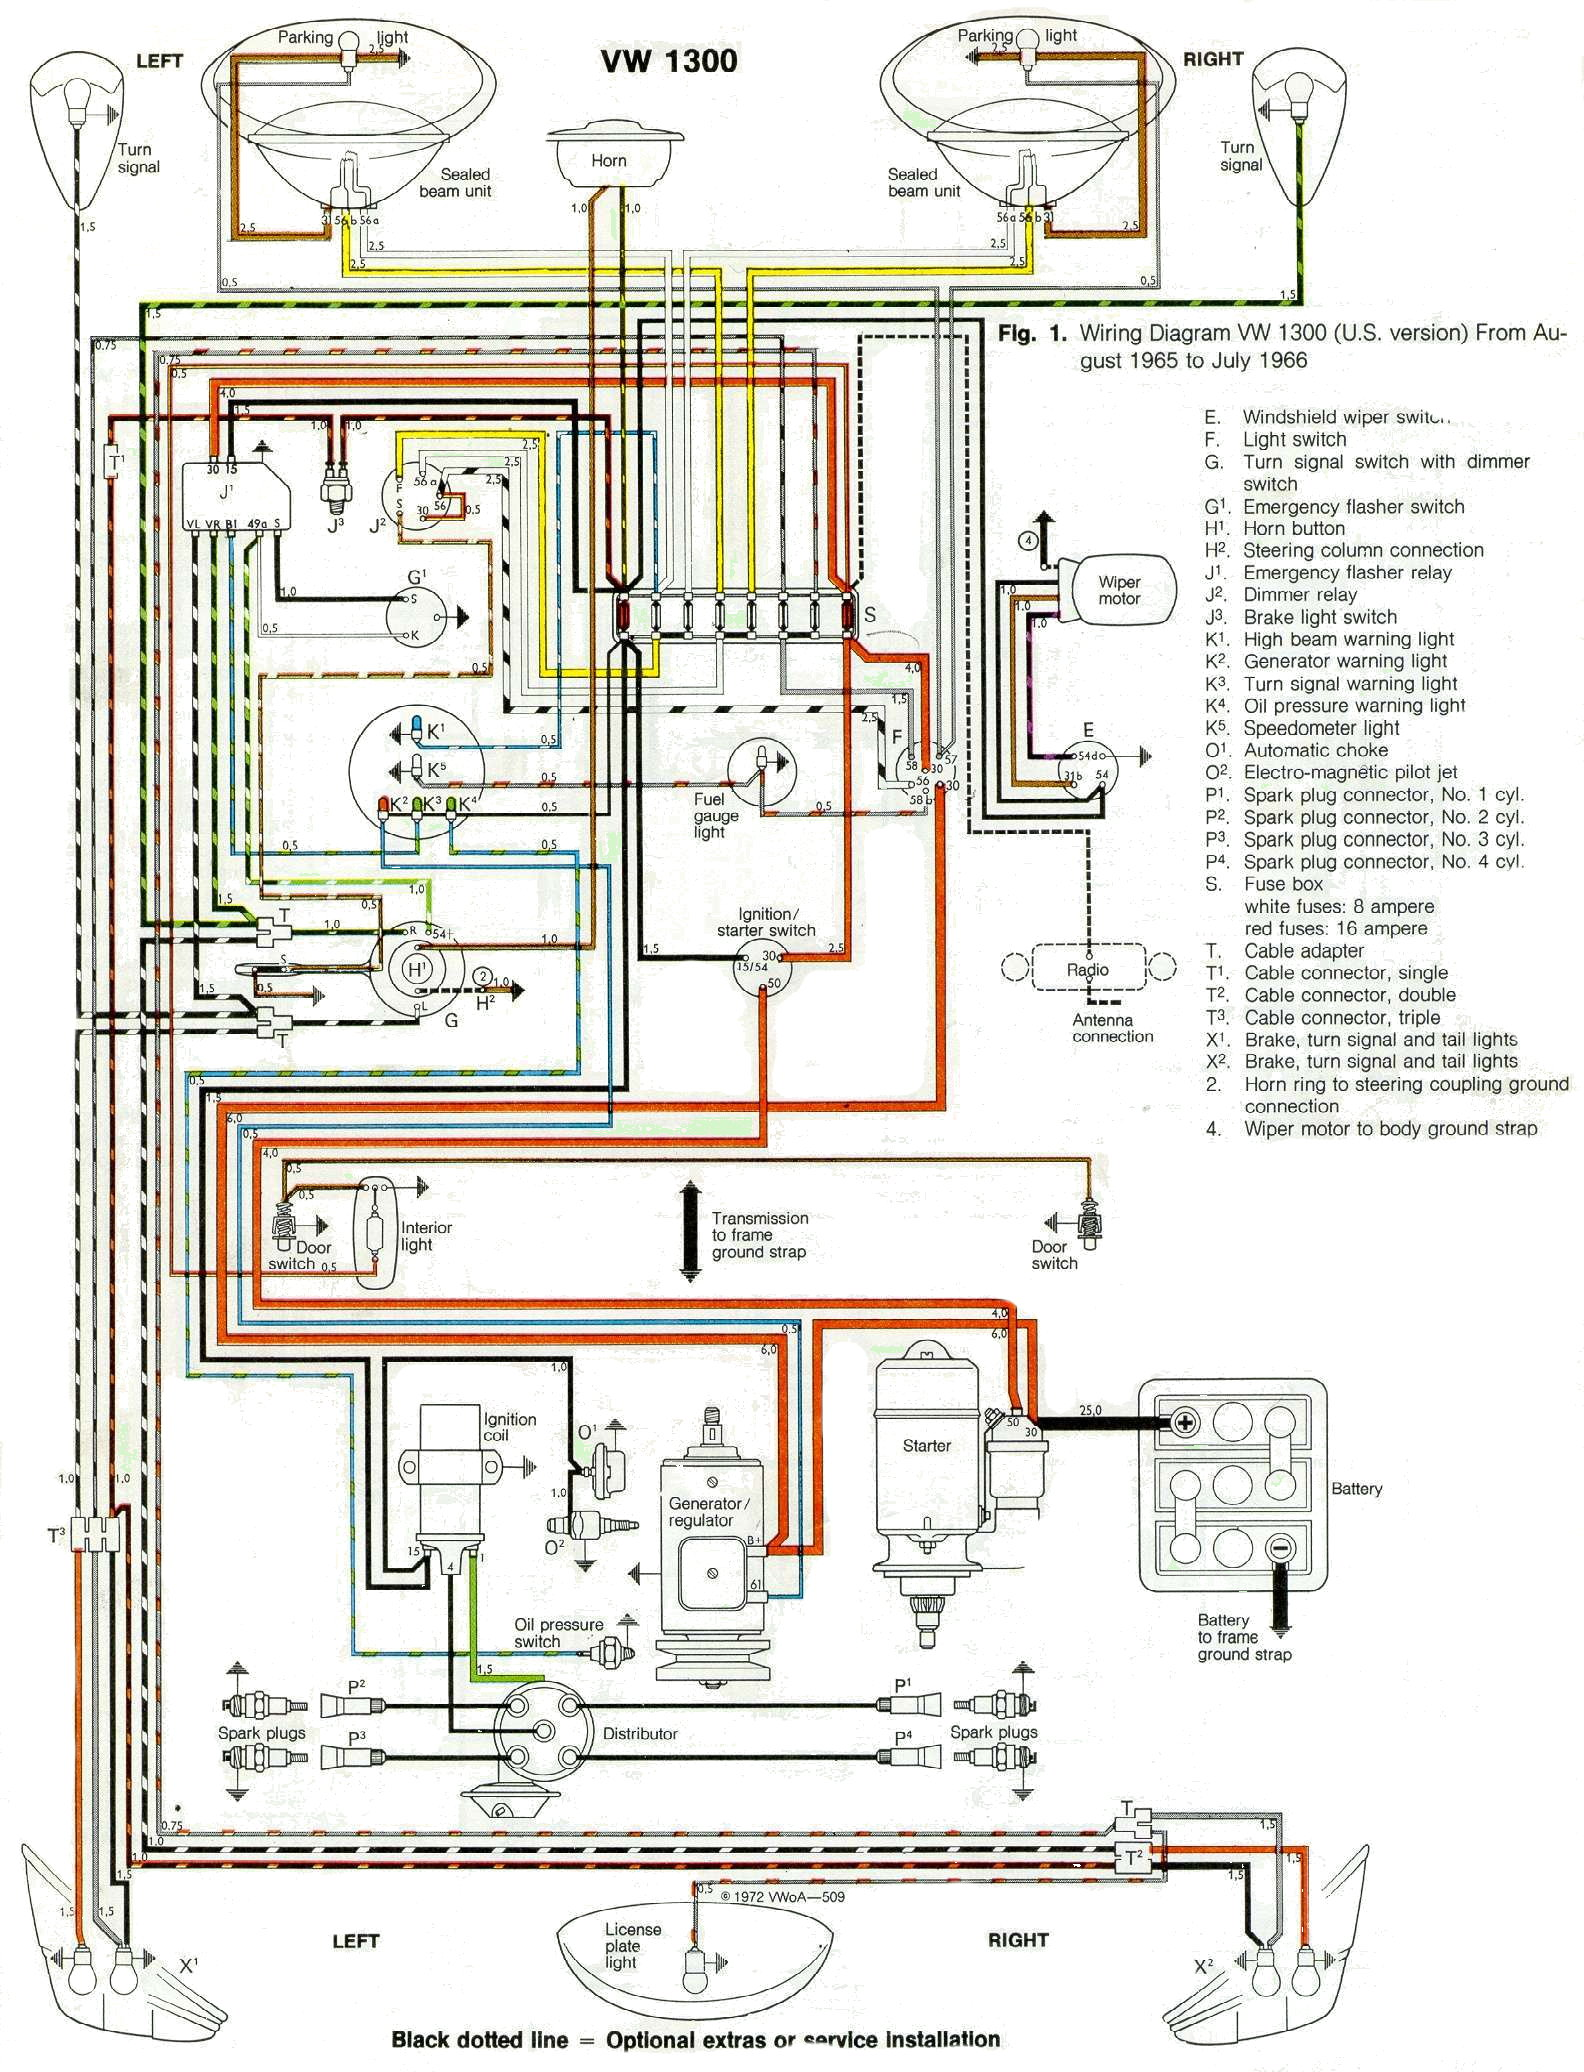 1966 Wiring 1966 wiring diagram VW Bug Headlight Assembly at reclaimingppi.co